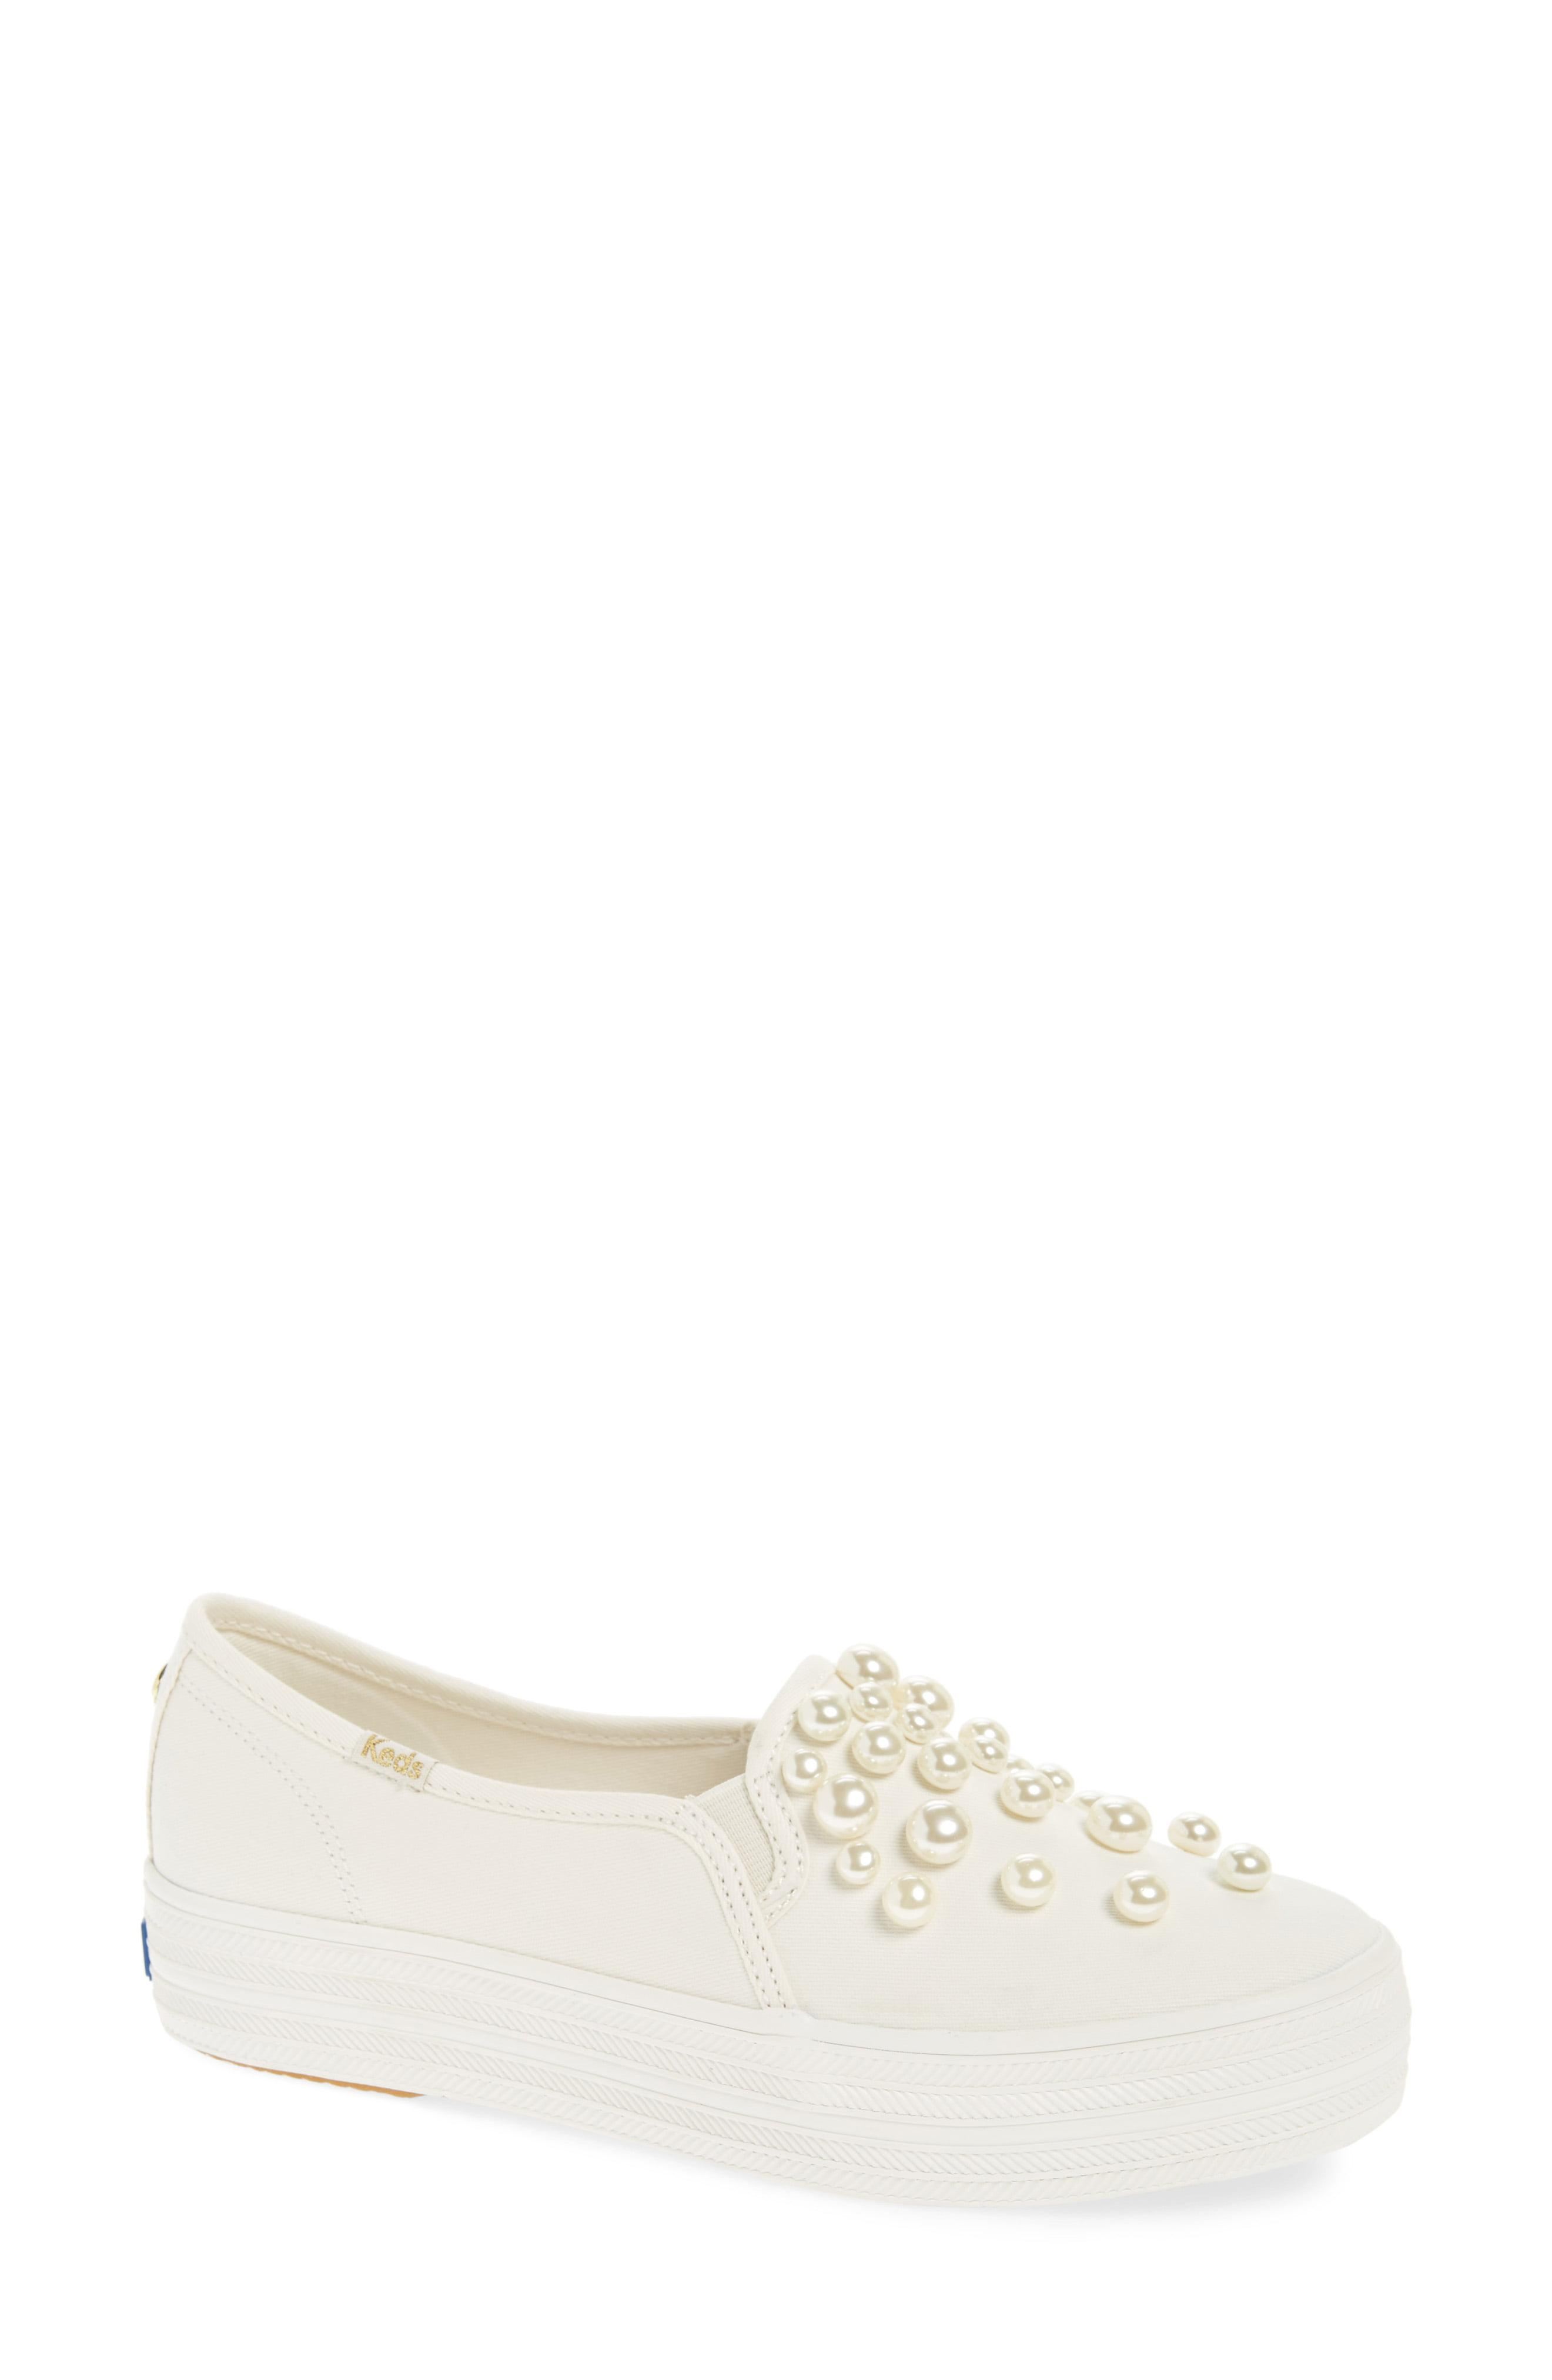 a6b3d398ce8 Kate Spade. Women s Natural Keds For Kate Spade New York Triple Decker  Embellished Slip-on Sneaker